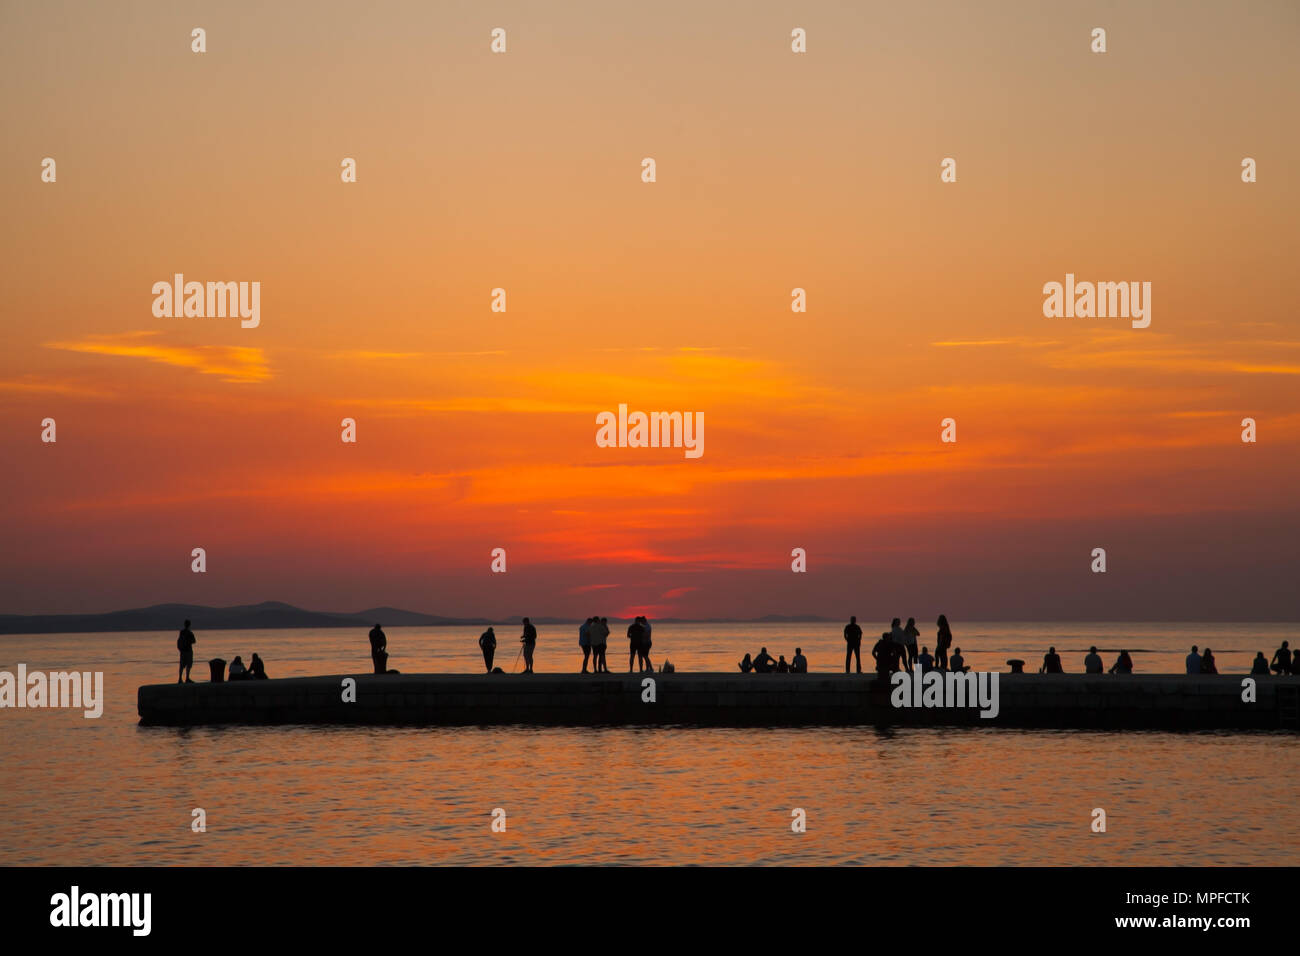 People watching beautiful glorious golden red and orange vivid vibrant sunset from the pier over the sea at the Adriatic port of Zadar Croatia - Stock Image